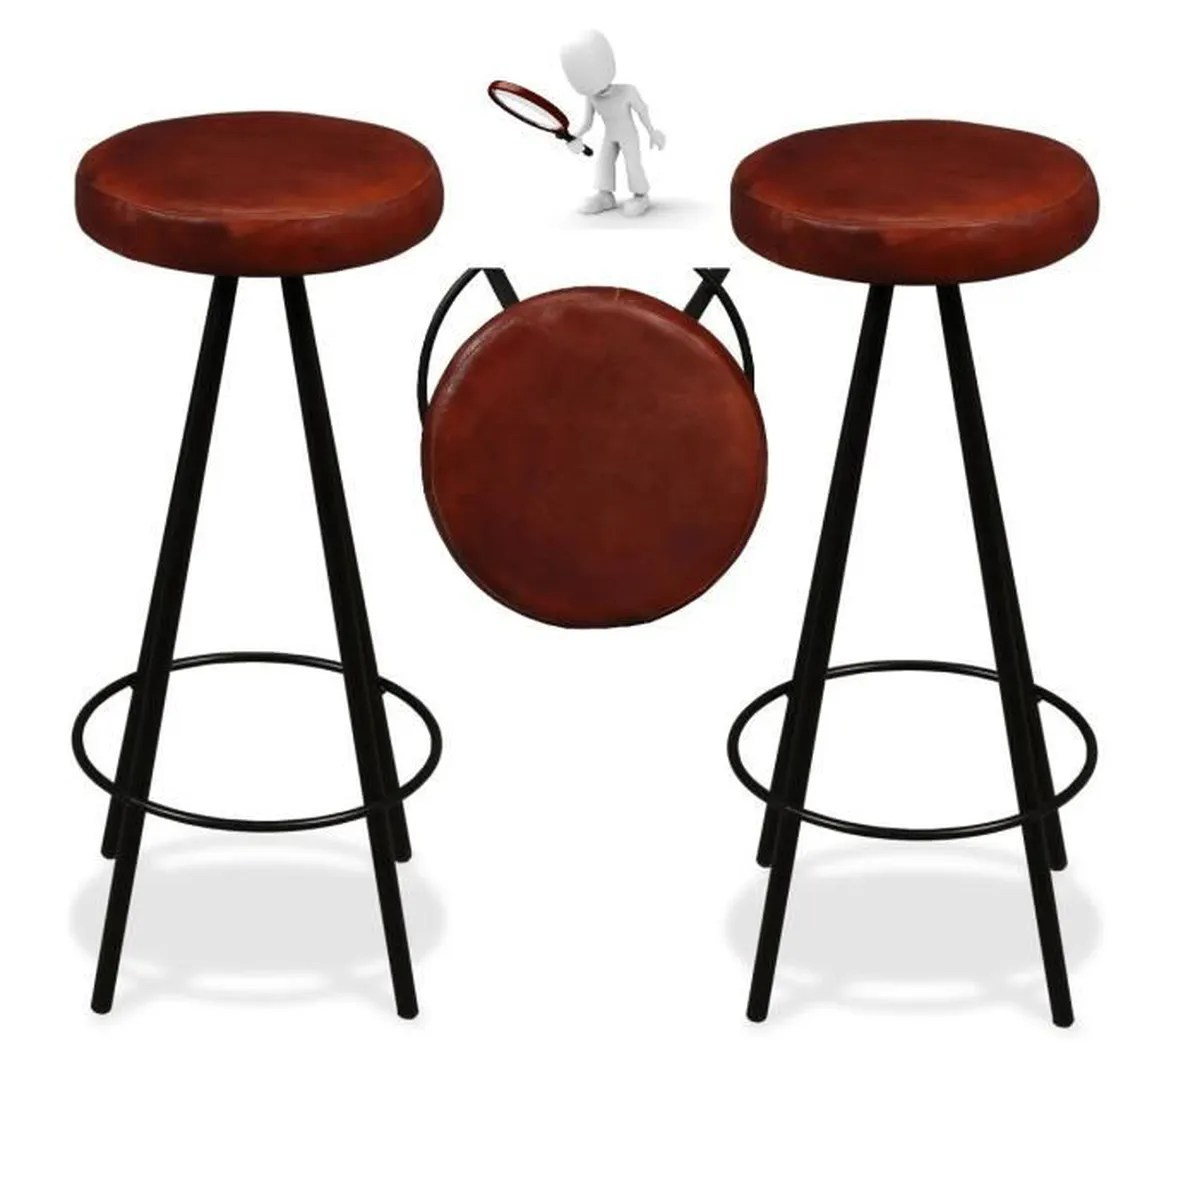 Tabourets De Bar New Cab Ensemble Tabouret De Bar Retro Vintage En Cuir Et